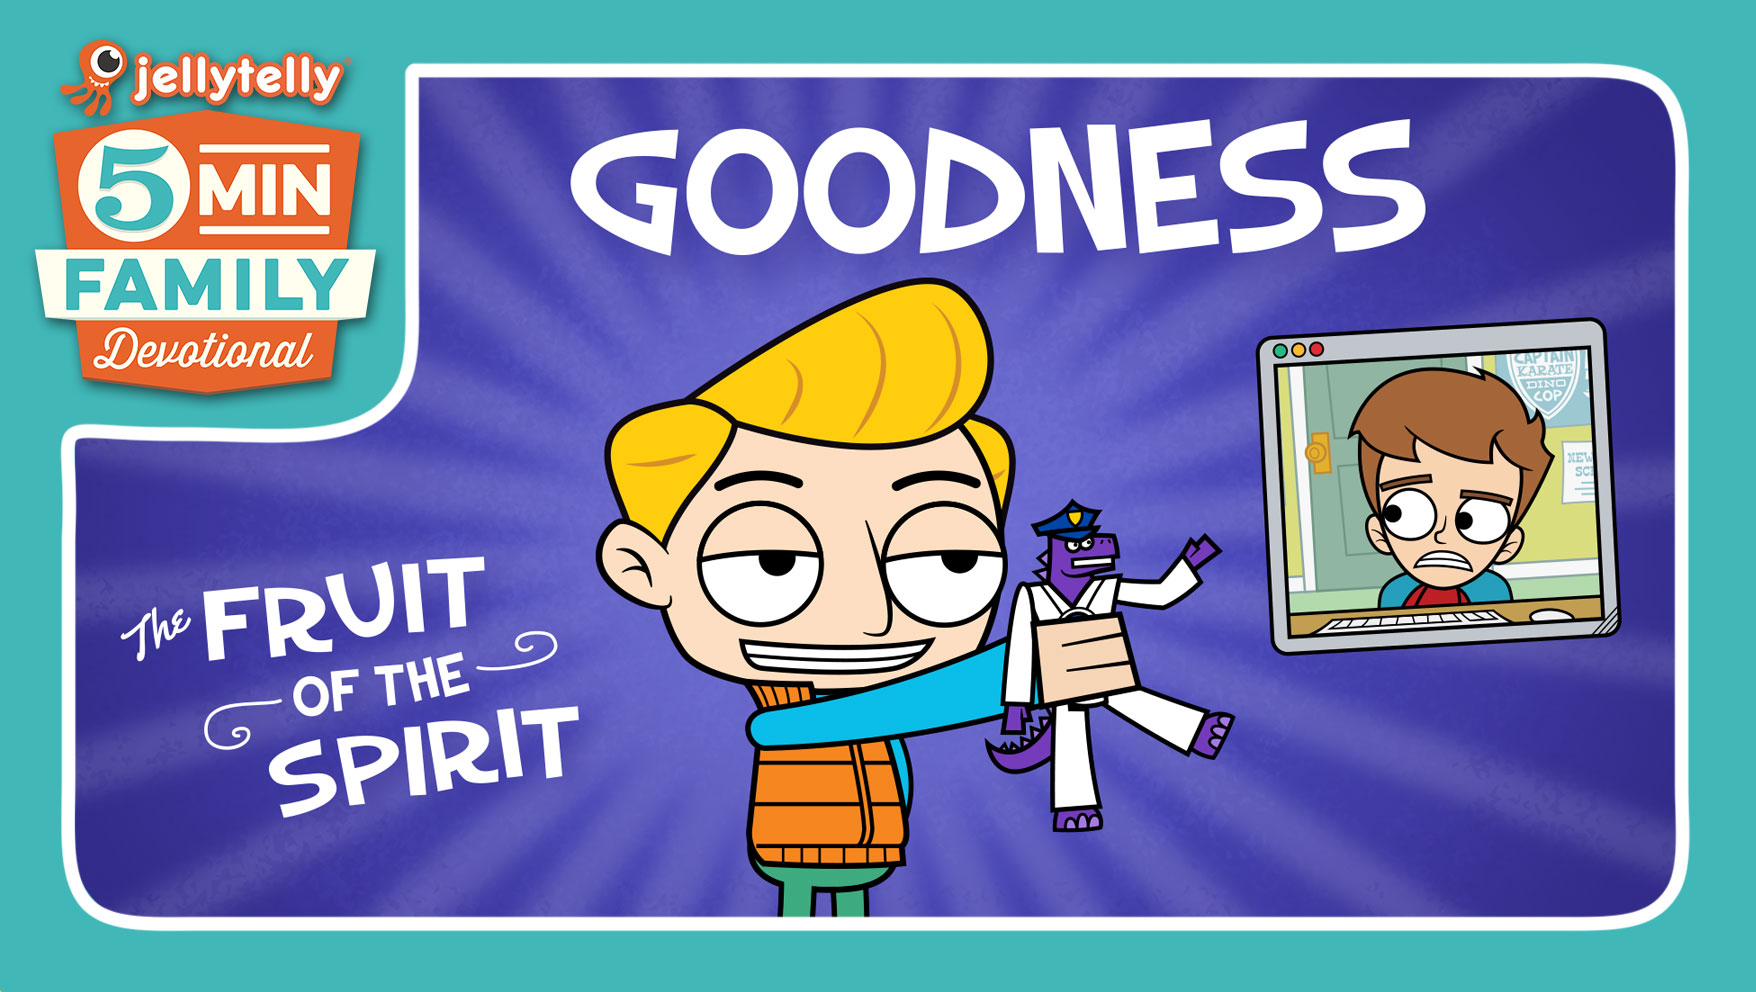 Goodness - The Fruit of the Spirit 5 Minute Family Devotional